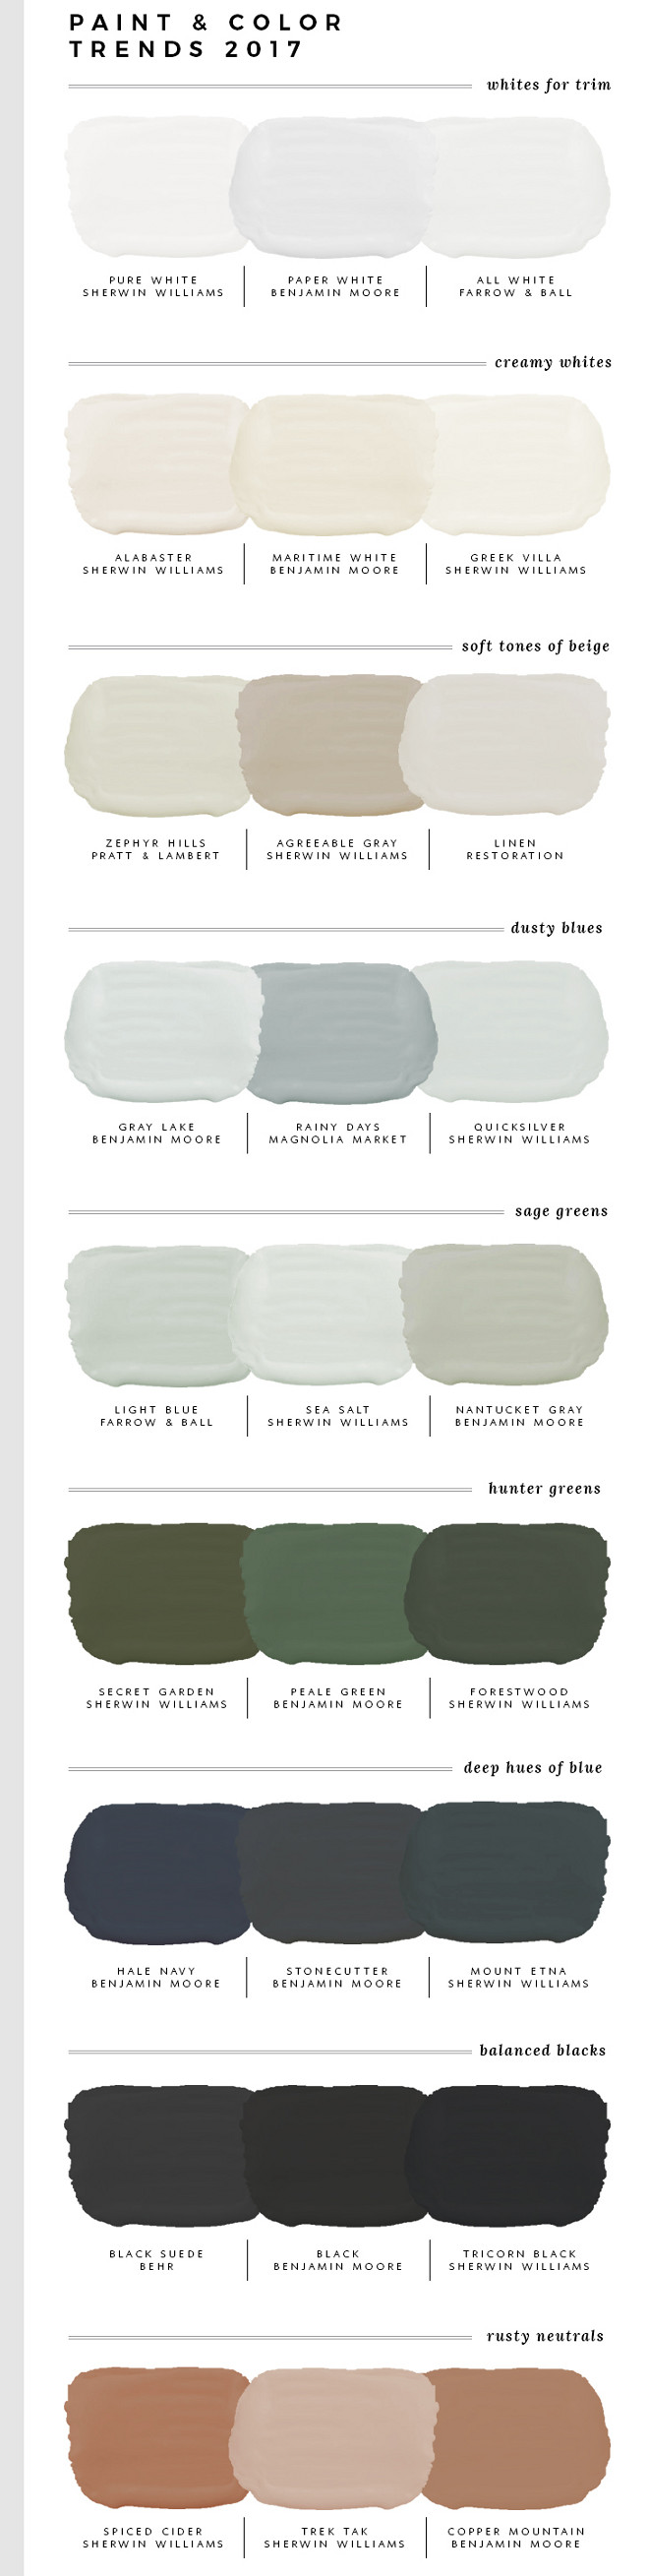 The Gallery For Benjamin Moore Silver Sage